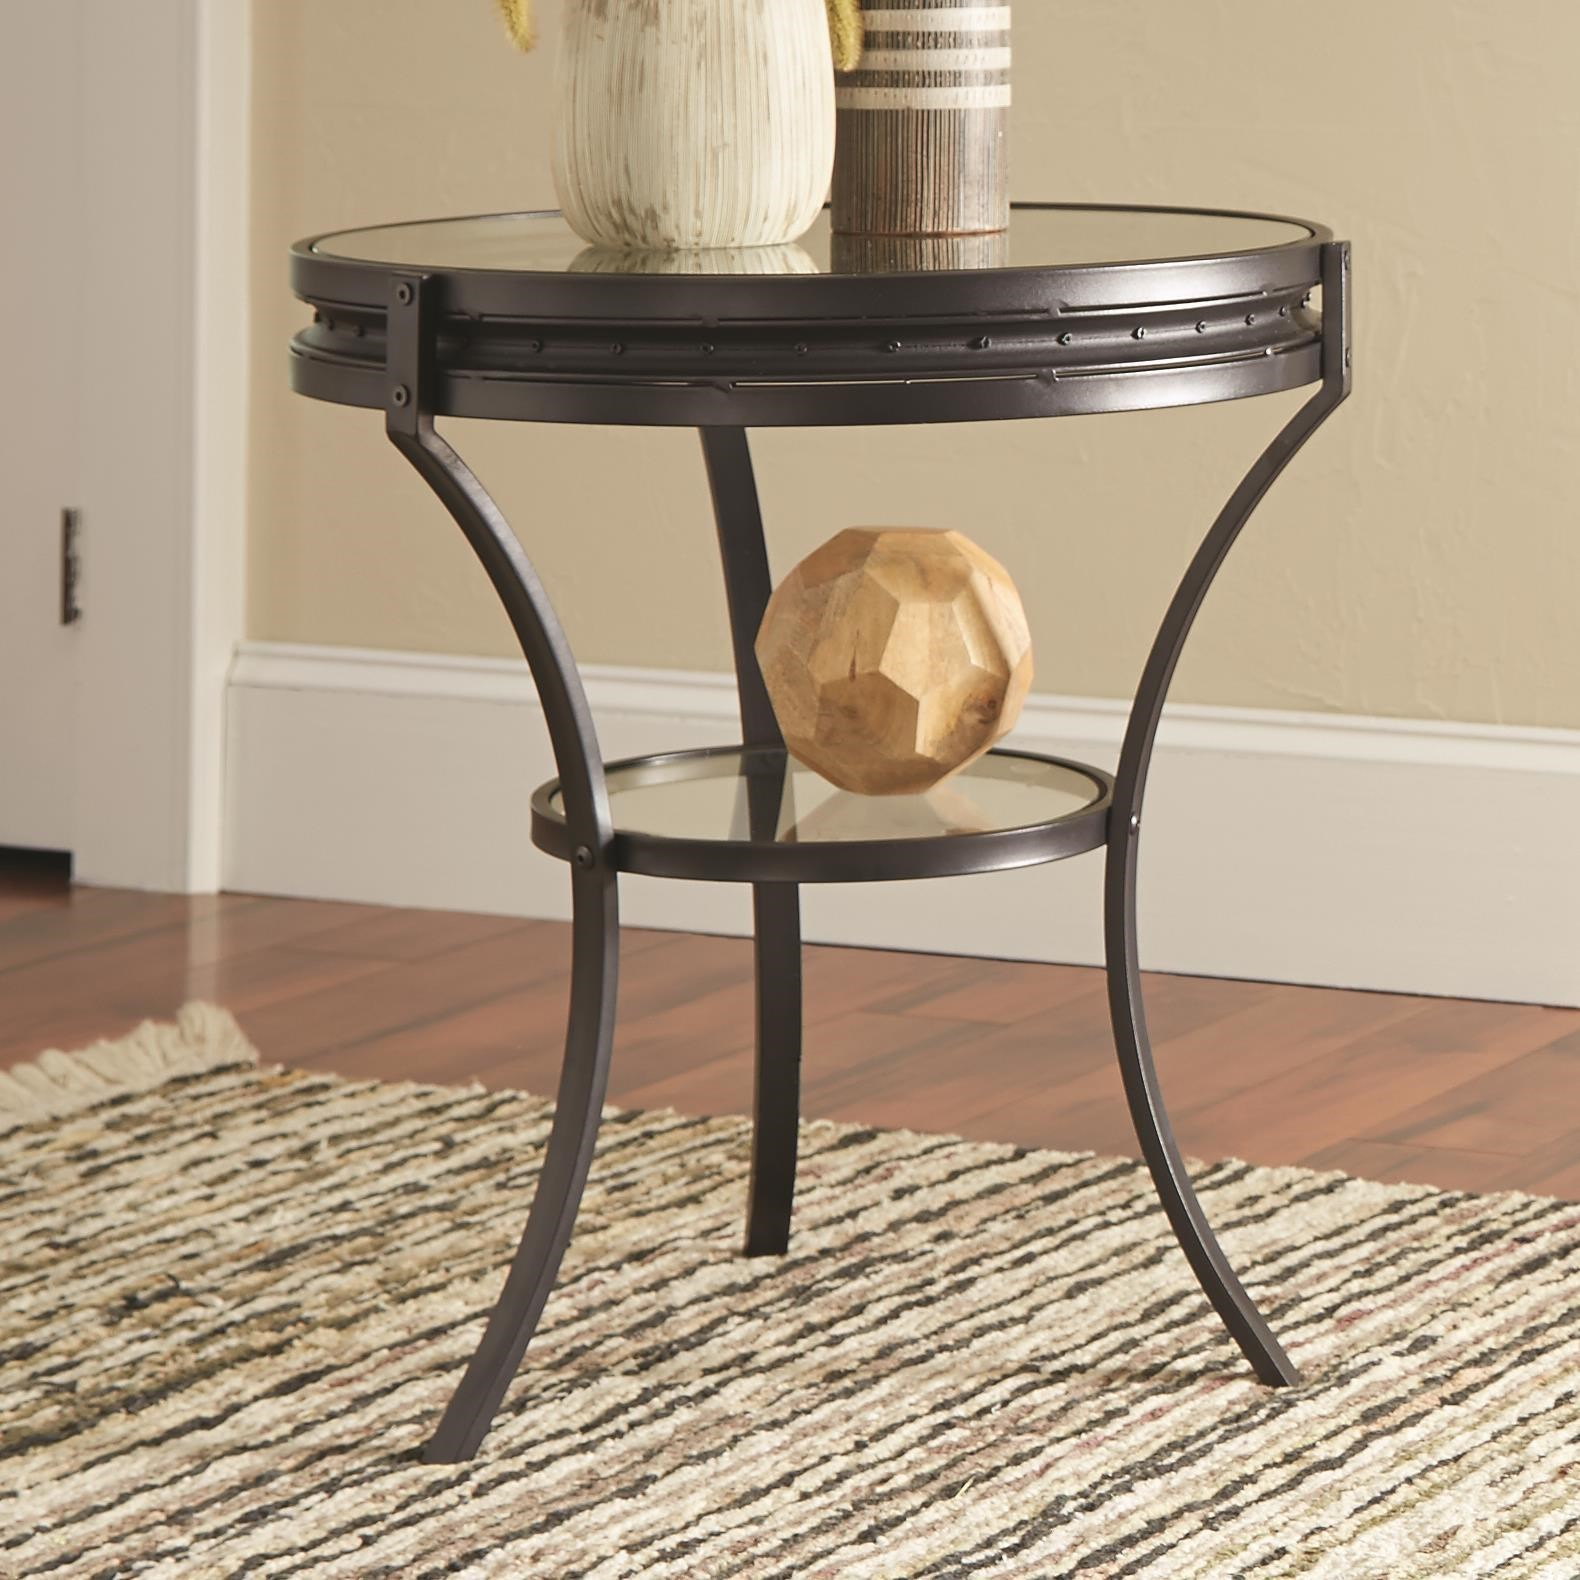 Round Industrial End Table Coaster 70521 705217 Round Industrial End Table With Glass